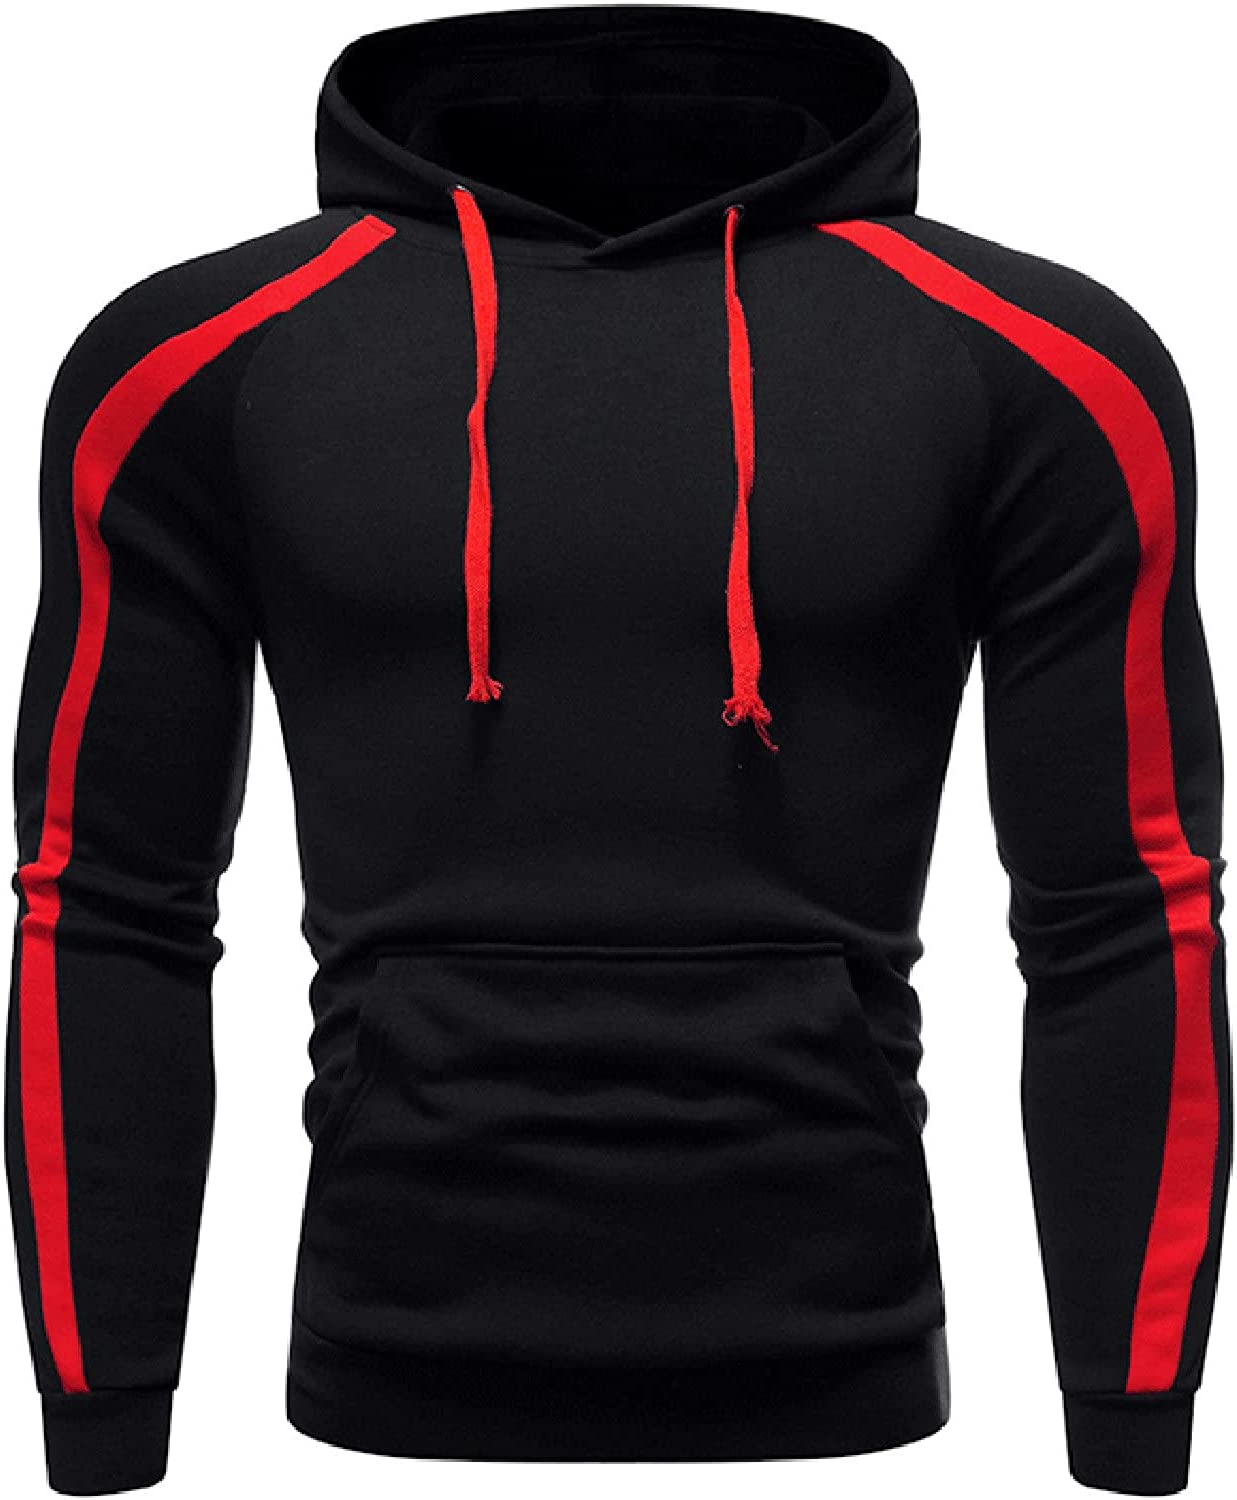 XXBR Hoodies for Mens, Fall Striped Patchwork Drawstring Hooded Sweatshirts Slim Fit Athletic Sports Casual Pullover